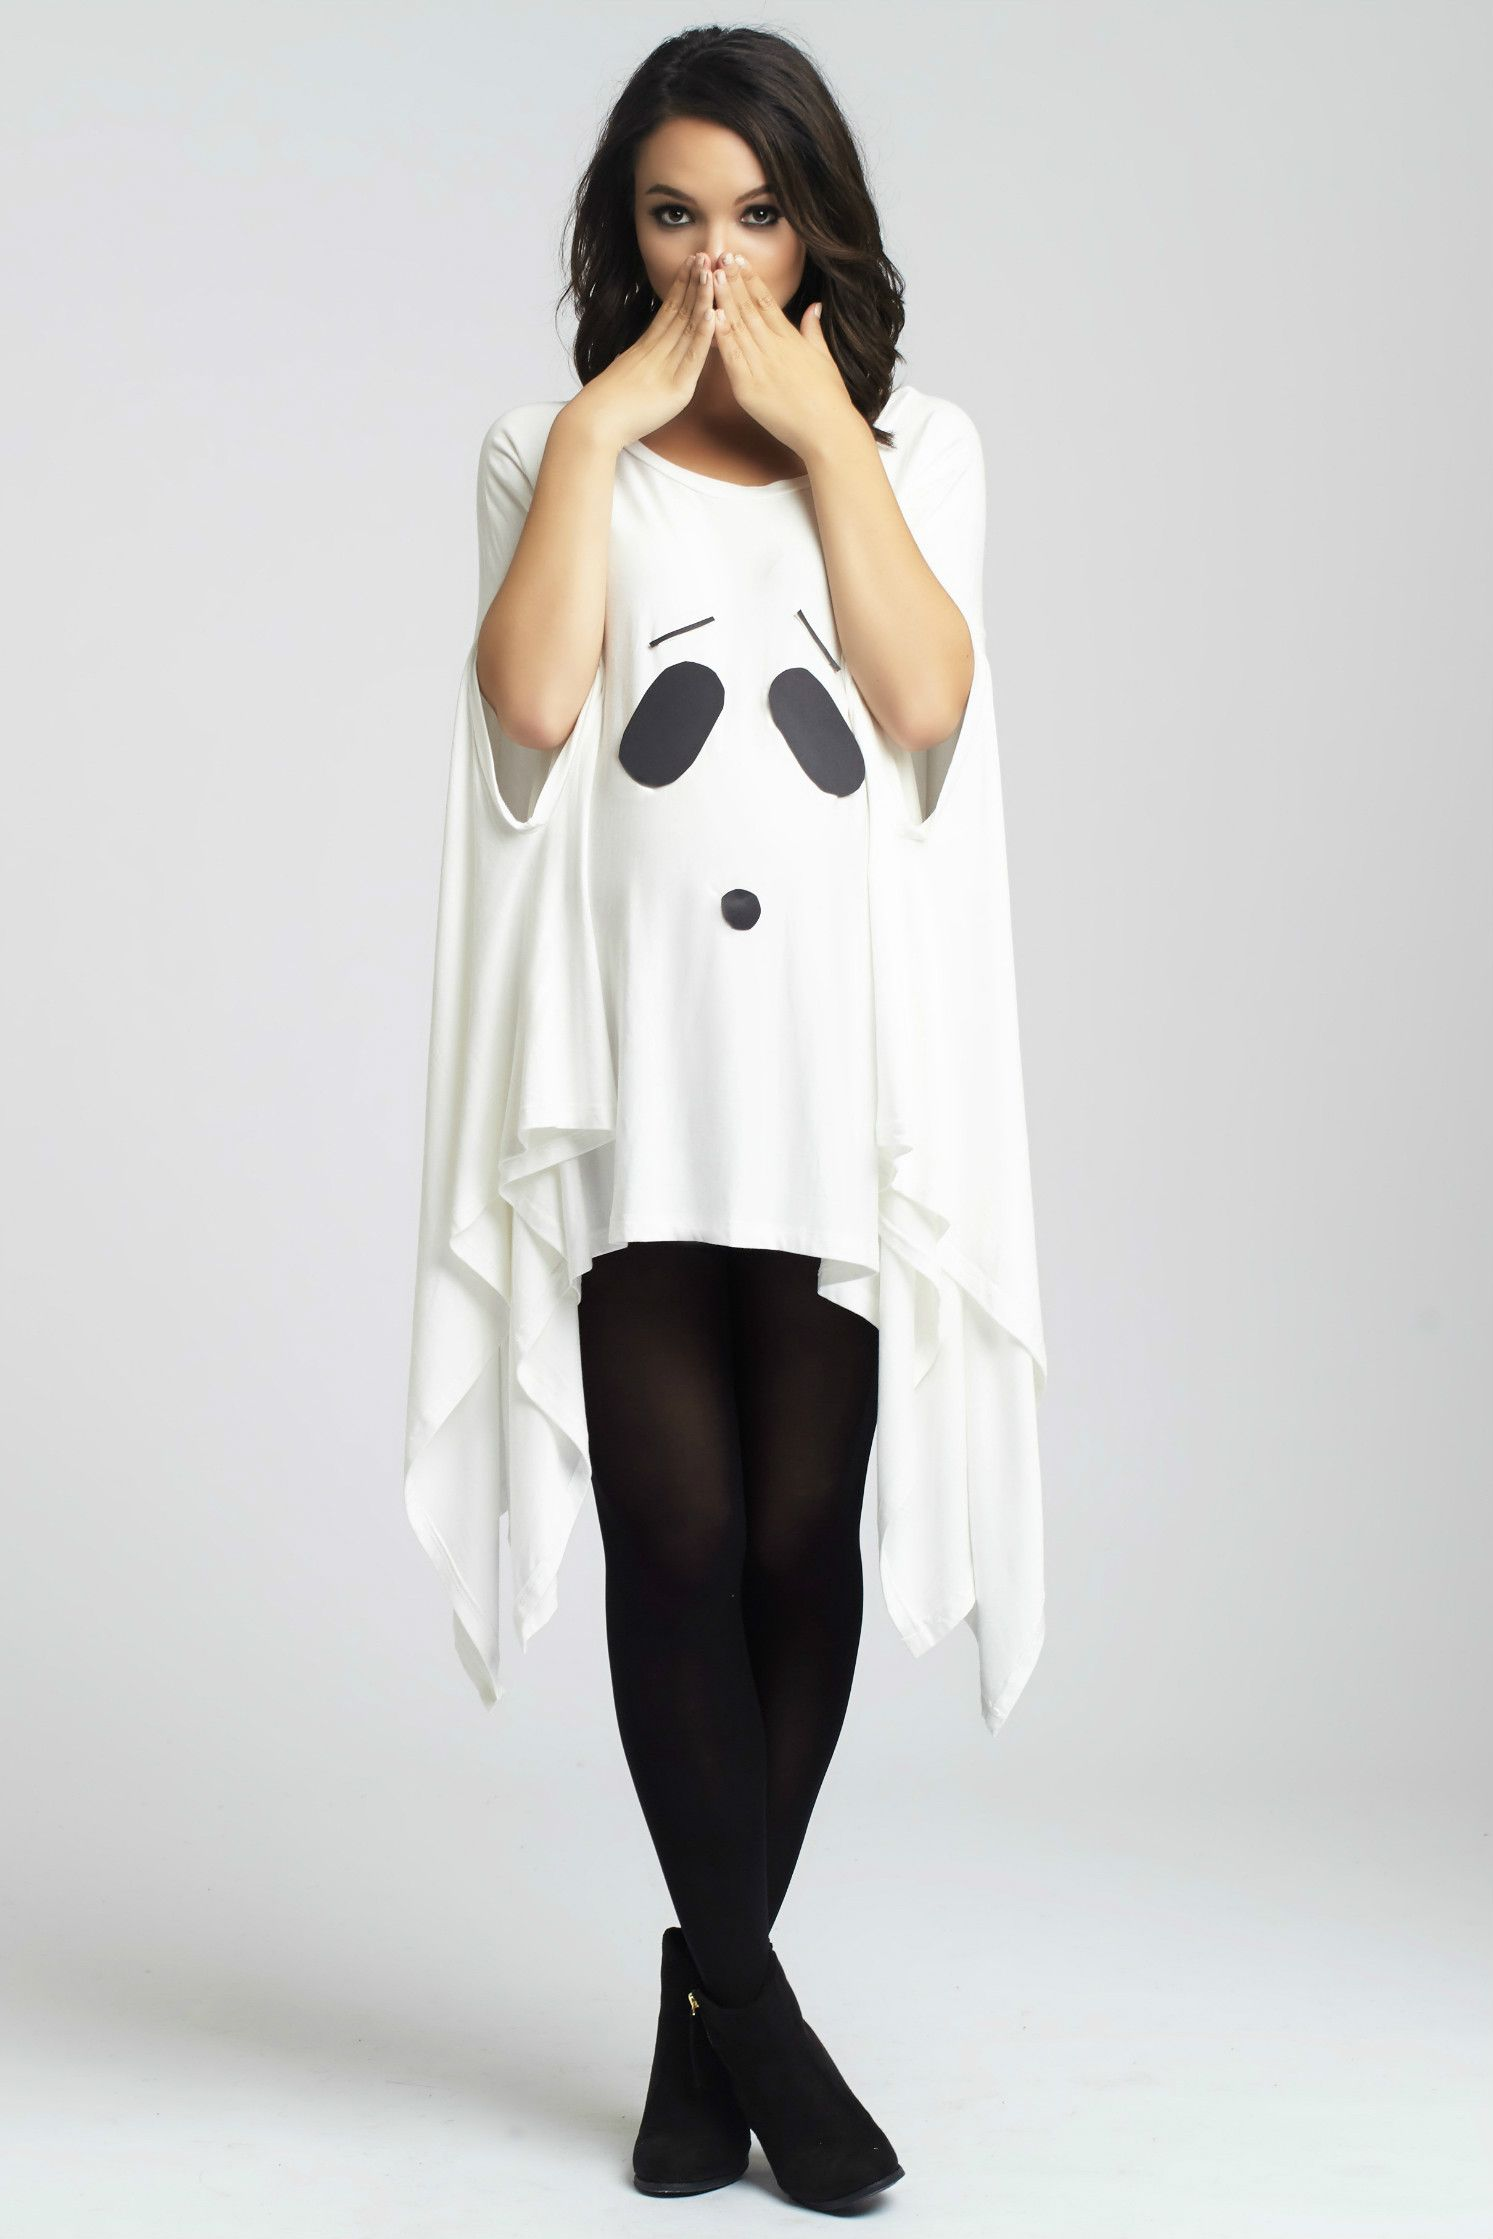 To acquire Tipshalloween Fashion diy skull cutout tee picture trends